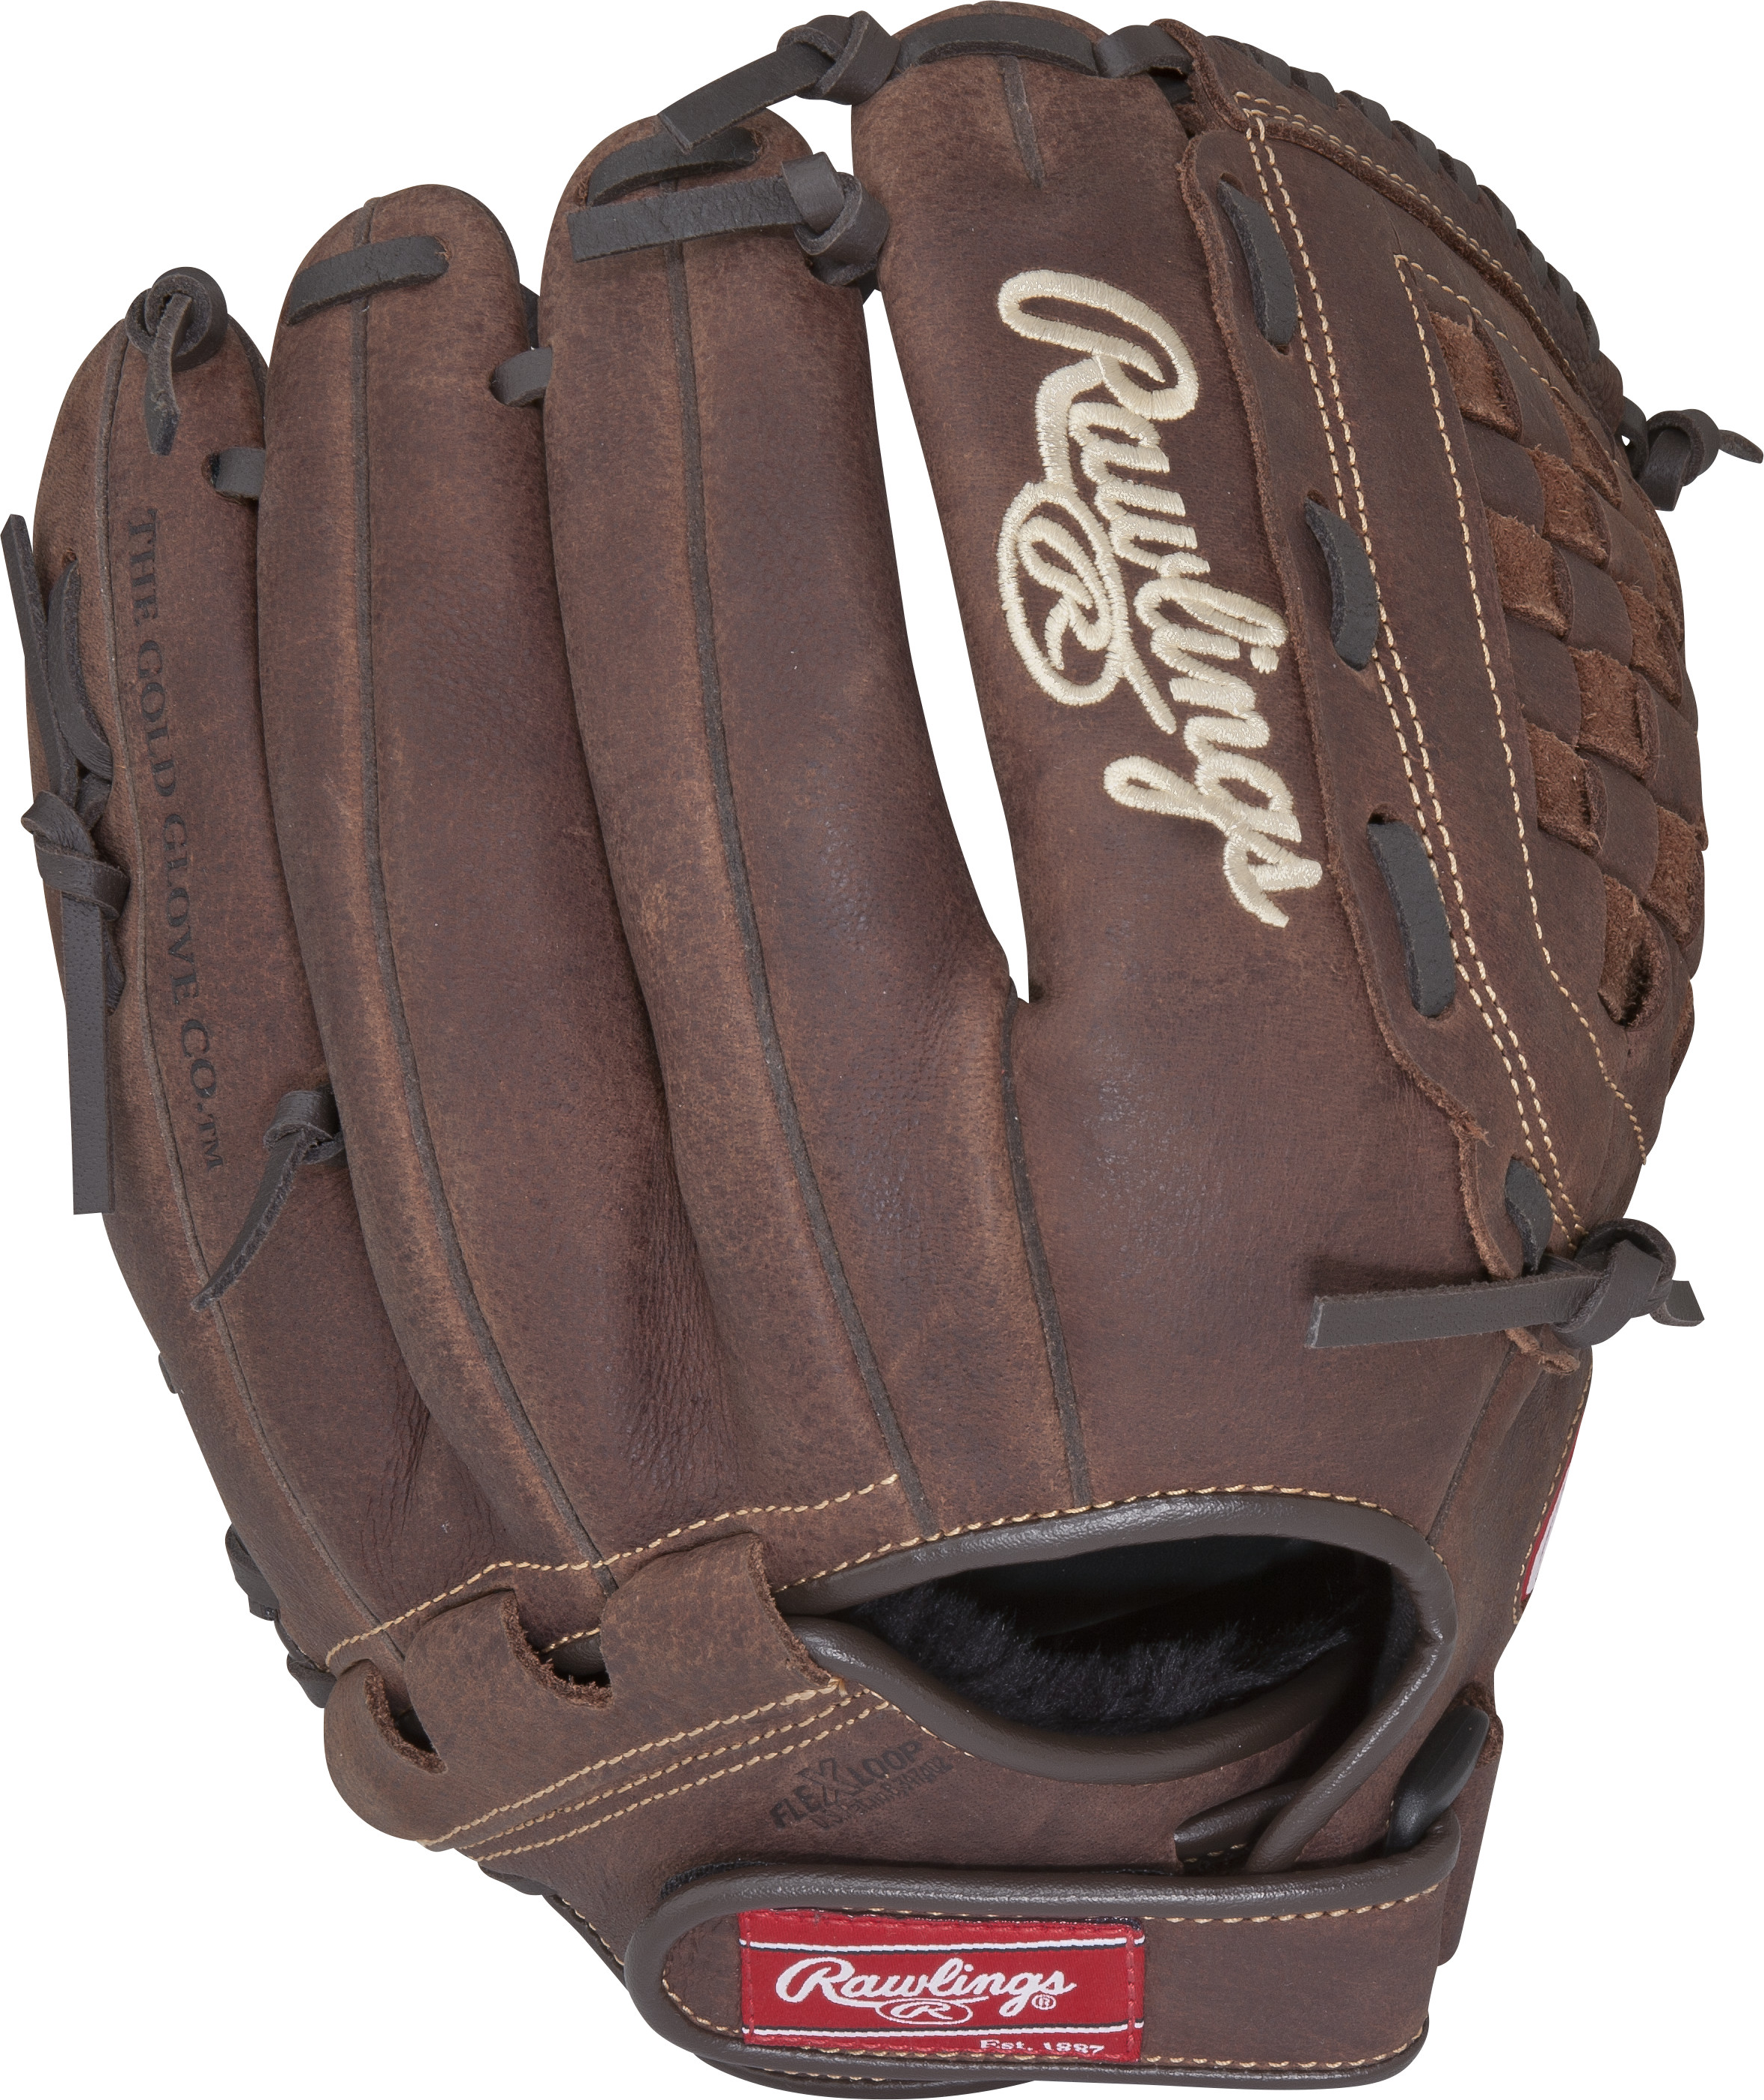 http://www.bestbatdeals.com/images/gloves/rawlings/P125BFL_back.jpg